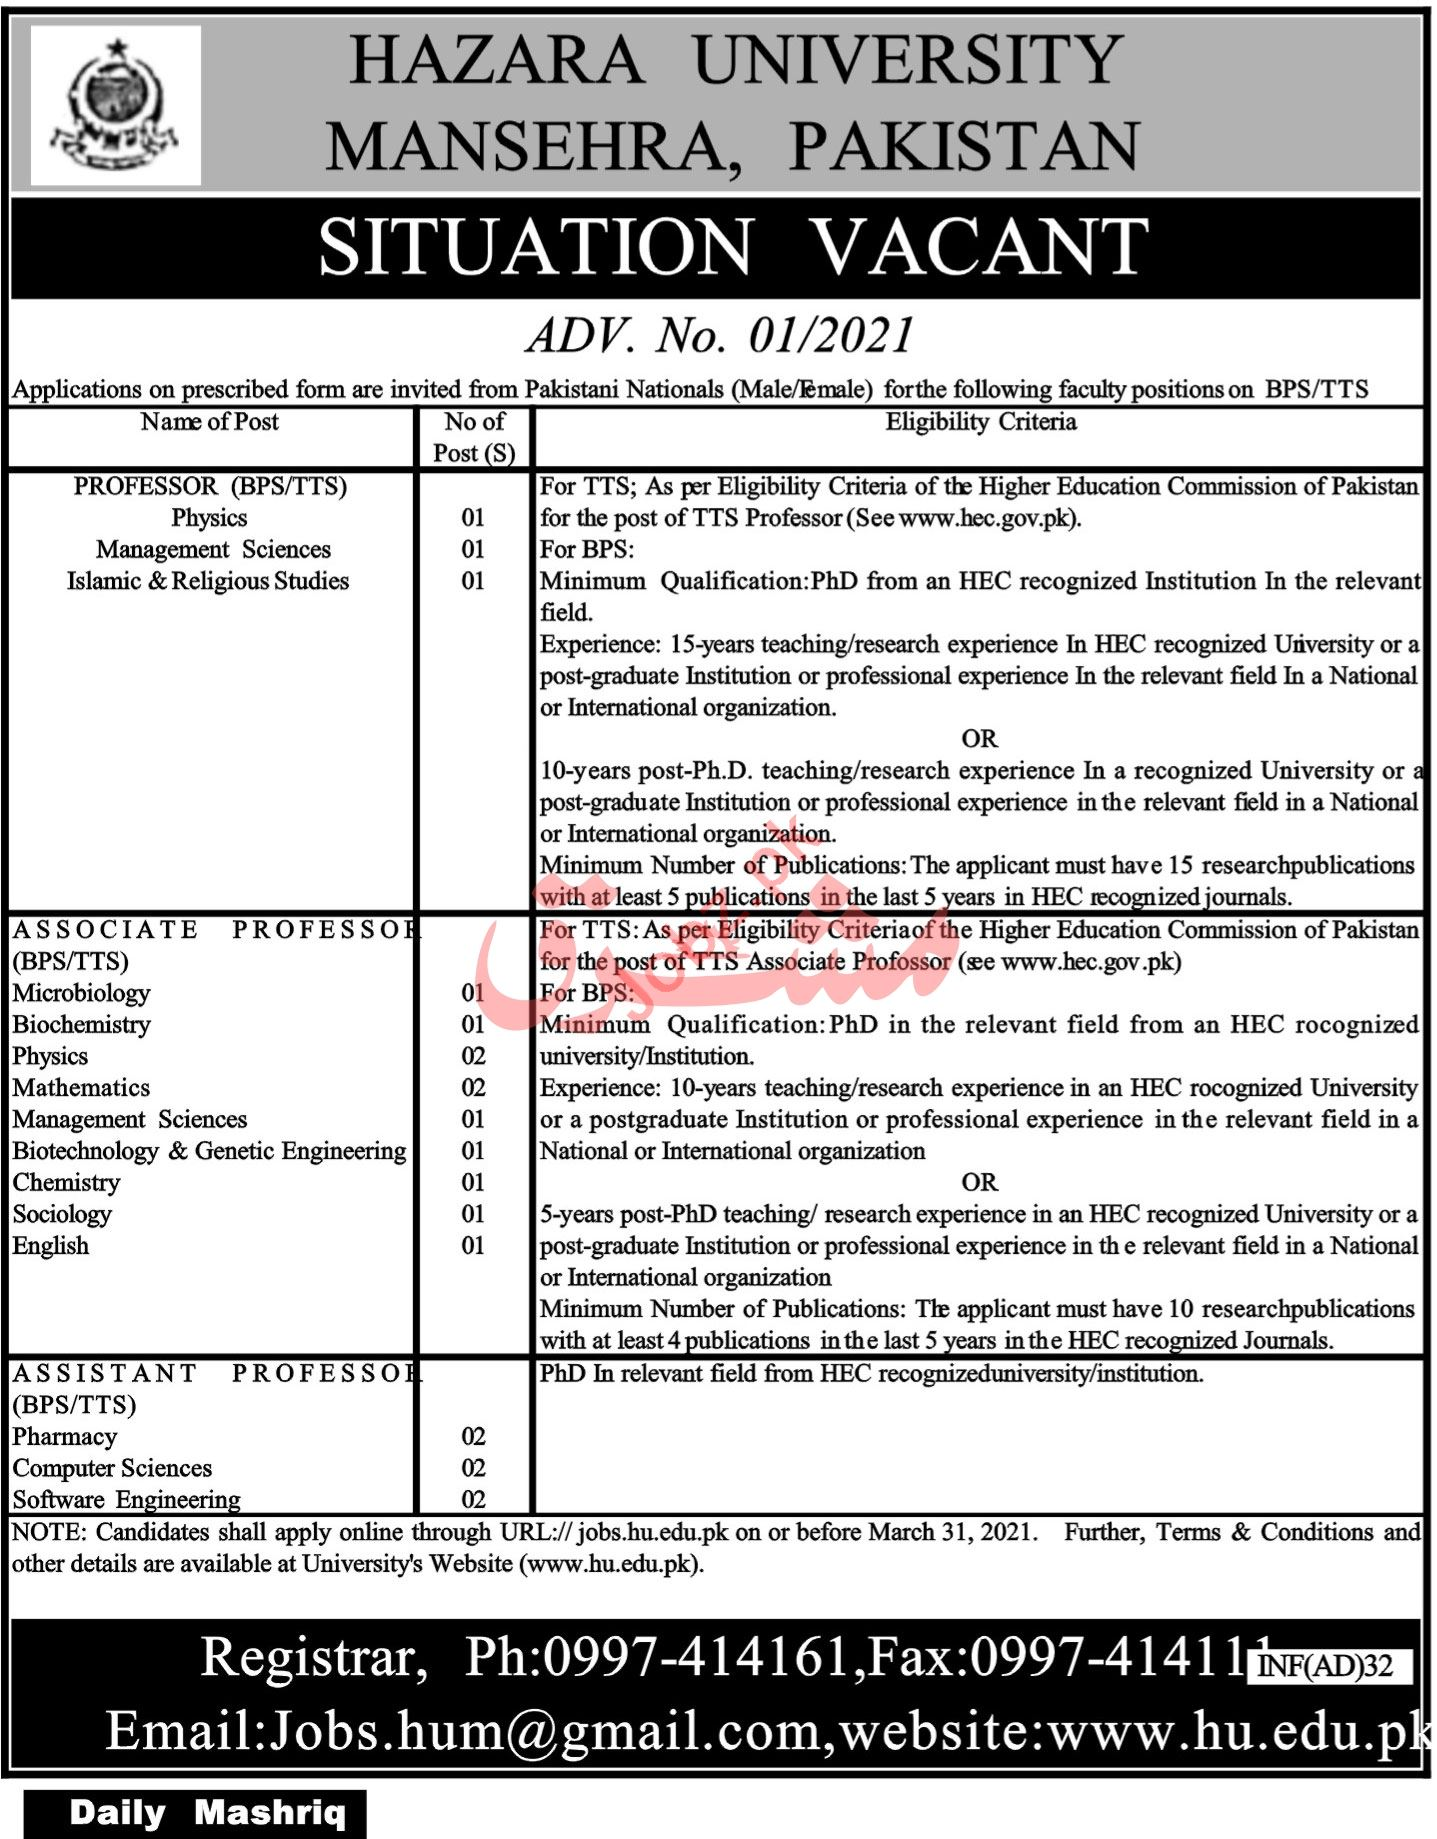 Hazara University HU Mansehra Jobs 2021 for Professors